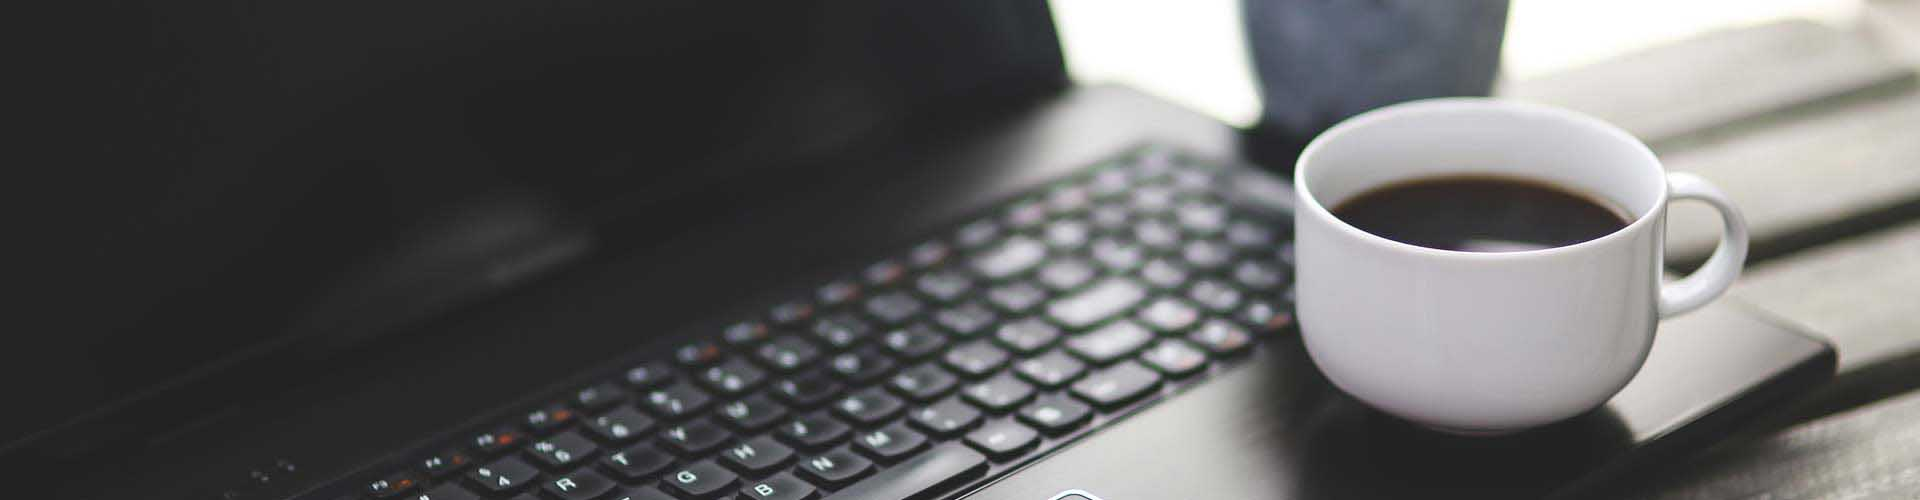 Prophesy Trucking Software Solutions Office Location